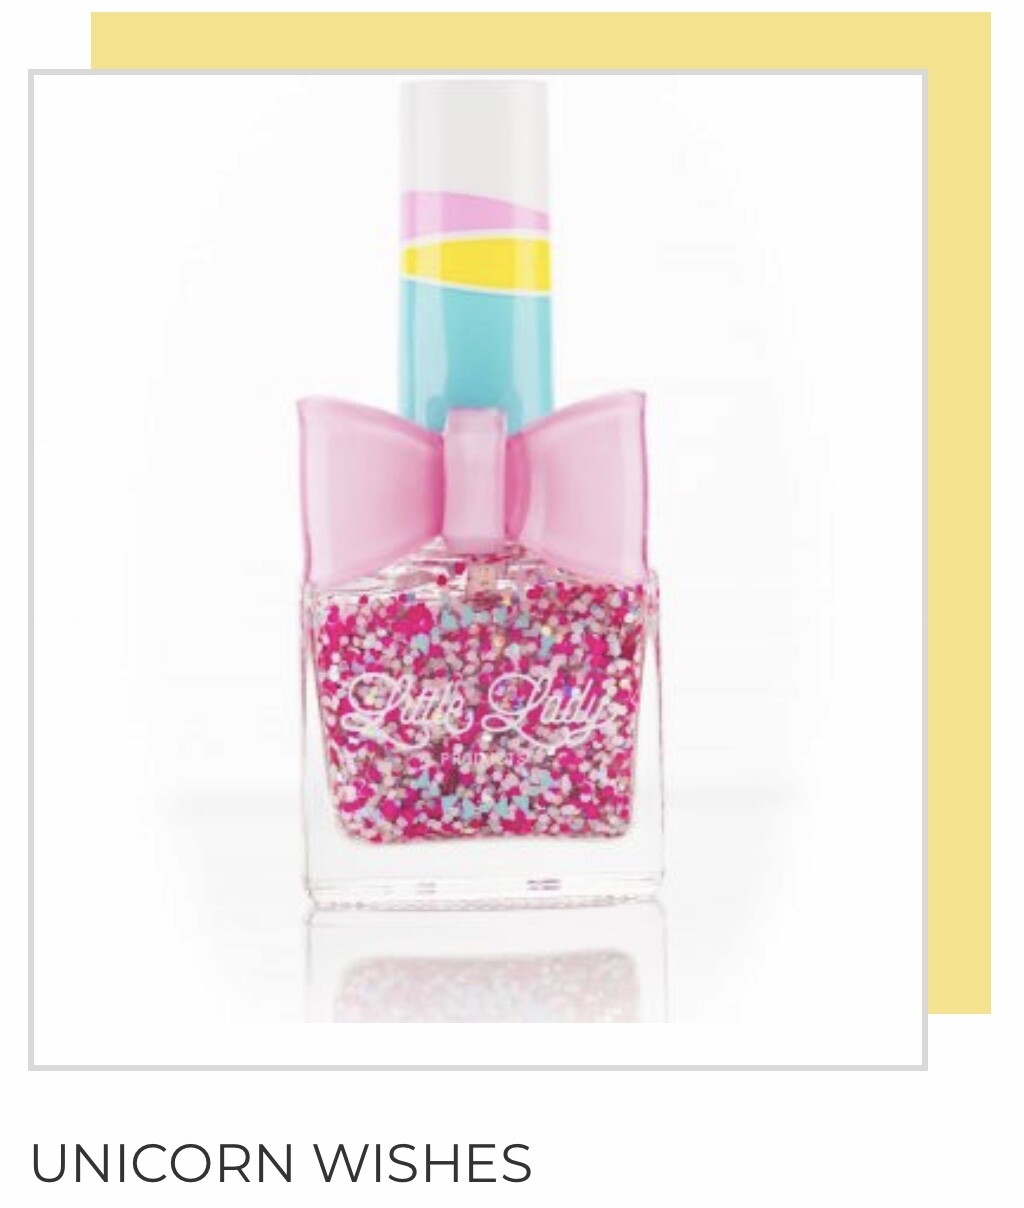 Unicorn Wishes Glitter Nail Polish